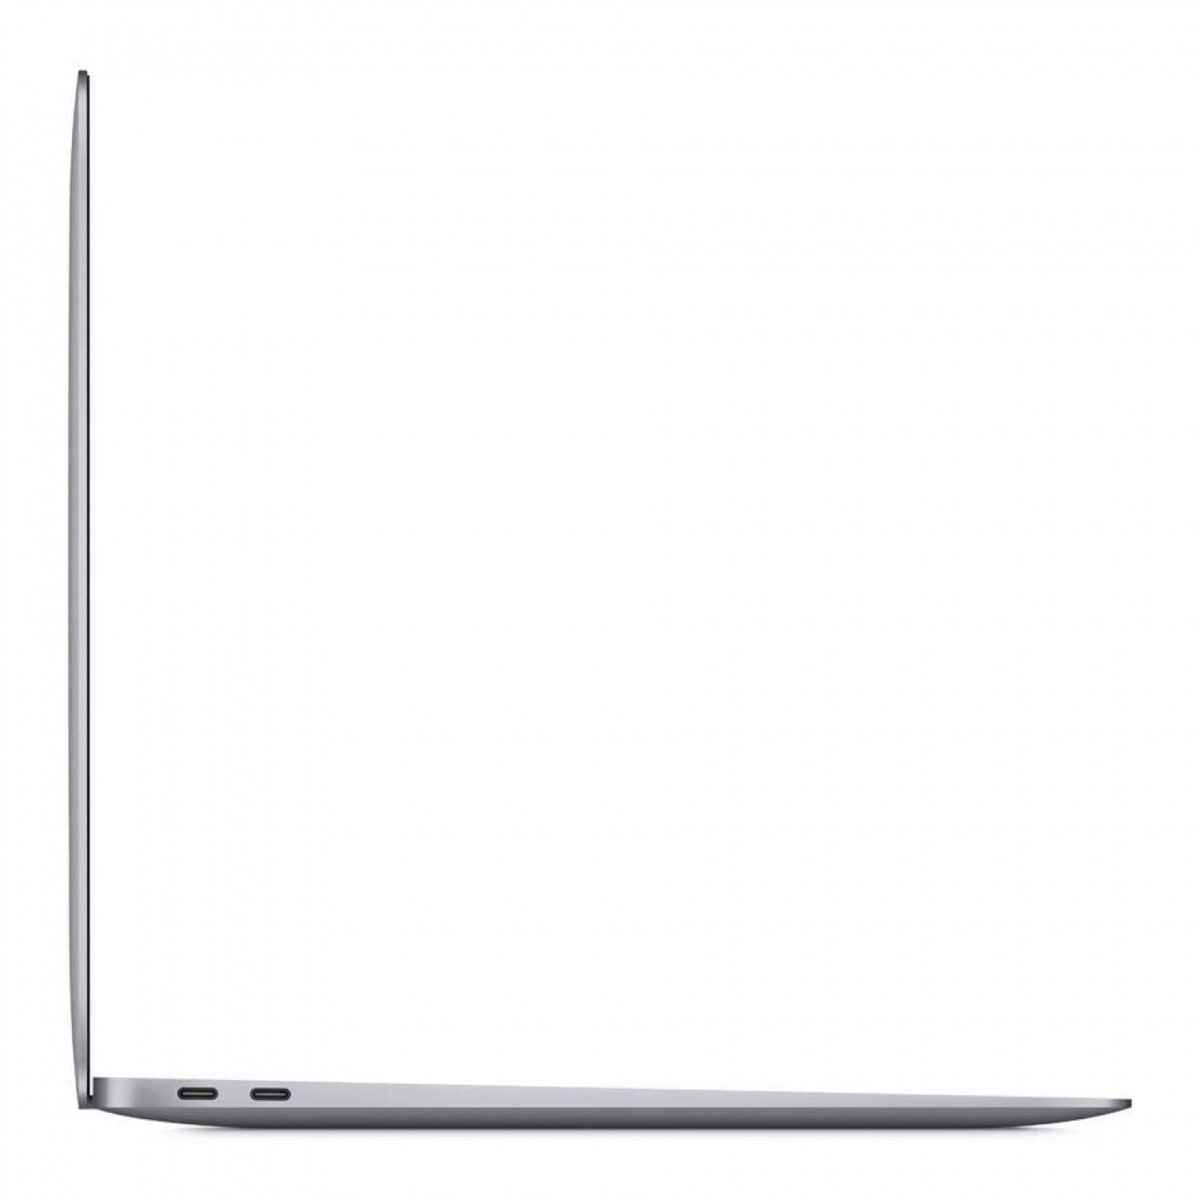 "Apple Macbook Air OS Big Sur 512GB SSD 16GB RAM Powerful 13.3"" Core i5 Mac Laptop 2018 Space Grey"